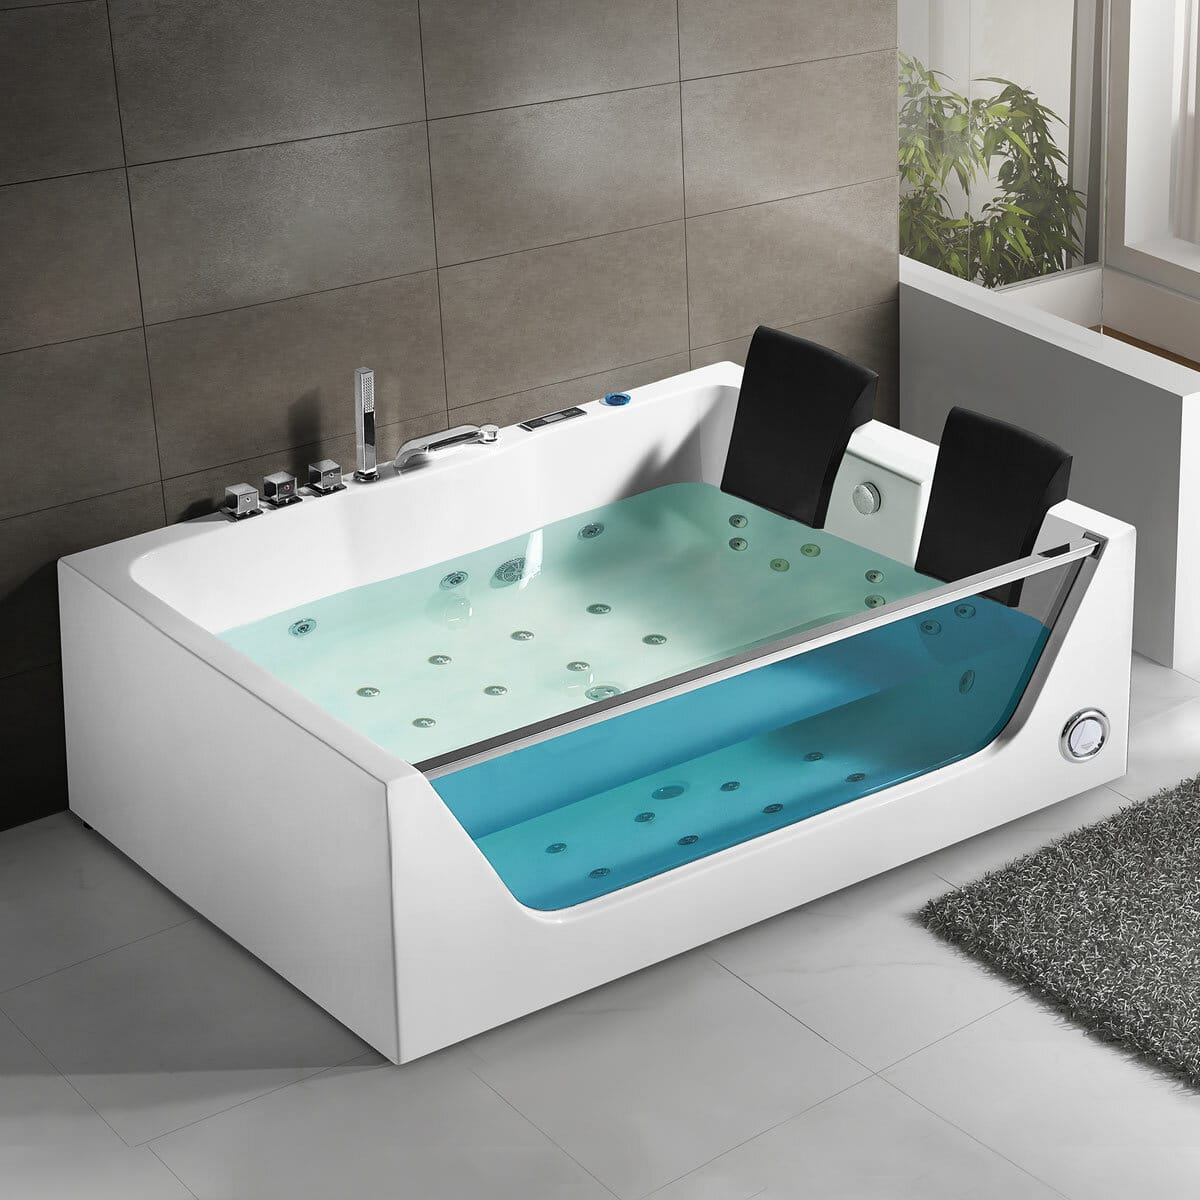 Best Jacuzzi Tubs